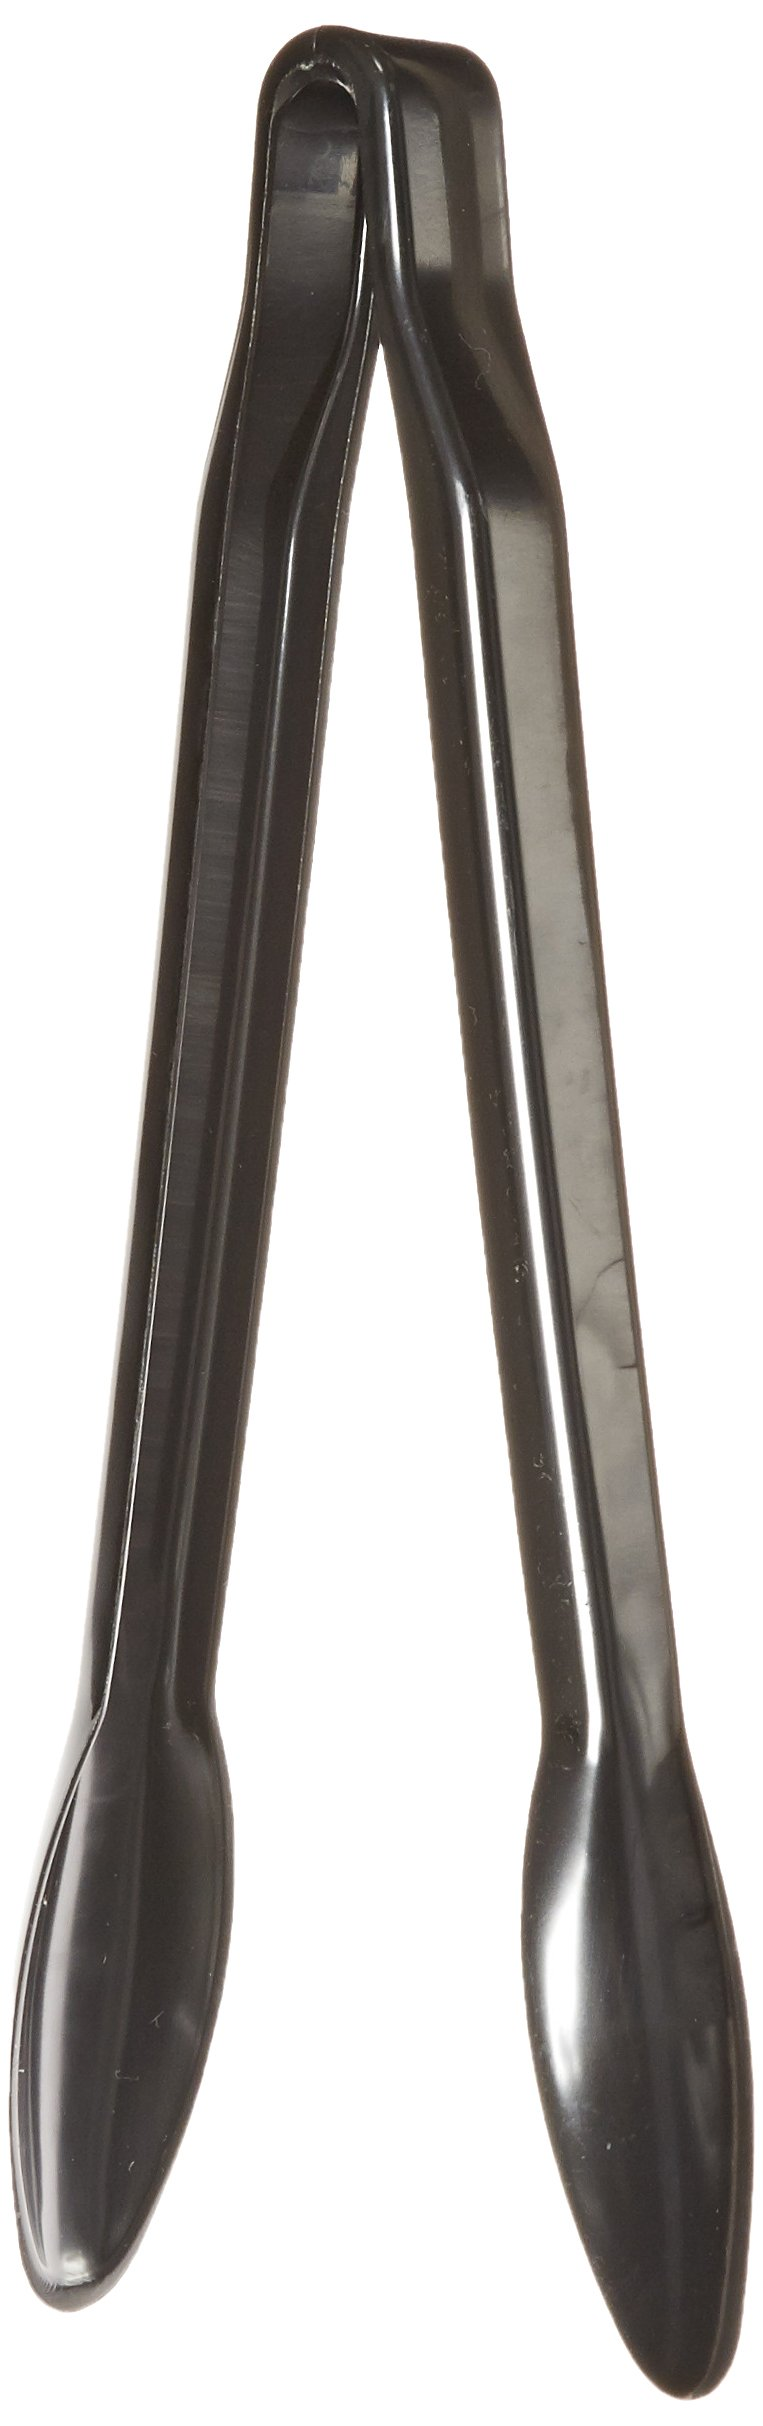 CaterLine 12-Inch Heavyweight Plastic Serving Tongs, Black (48-Count)